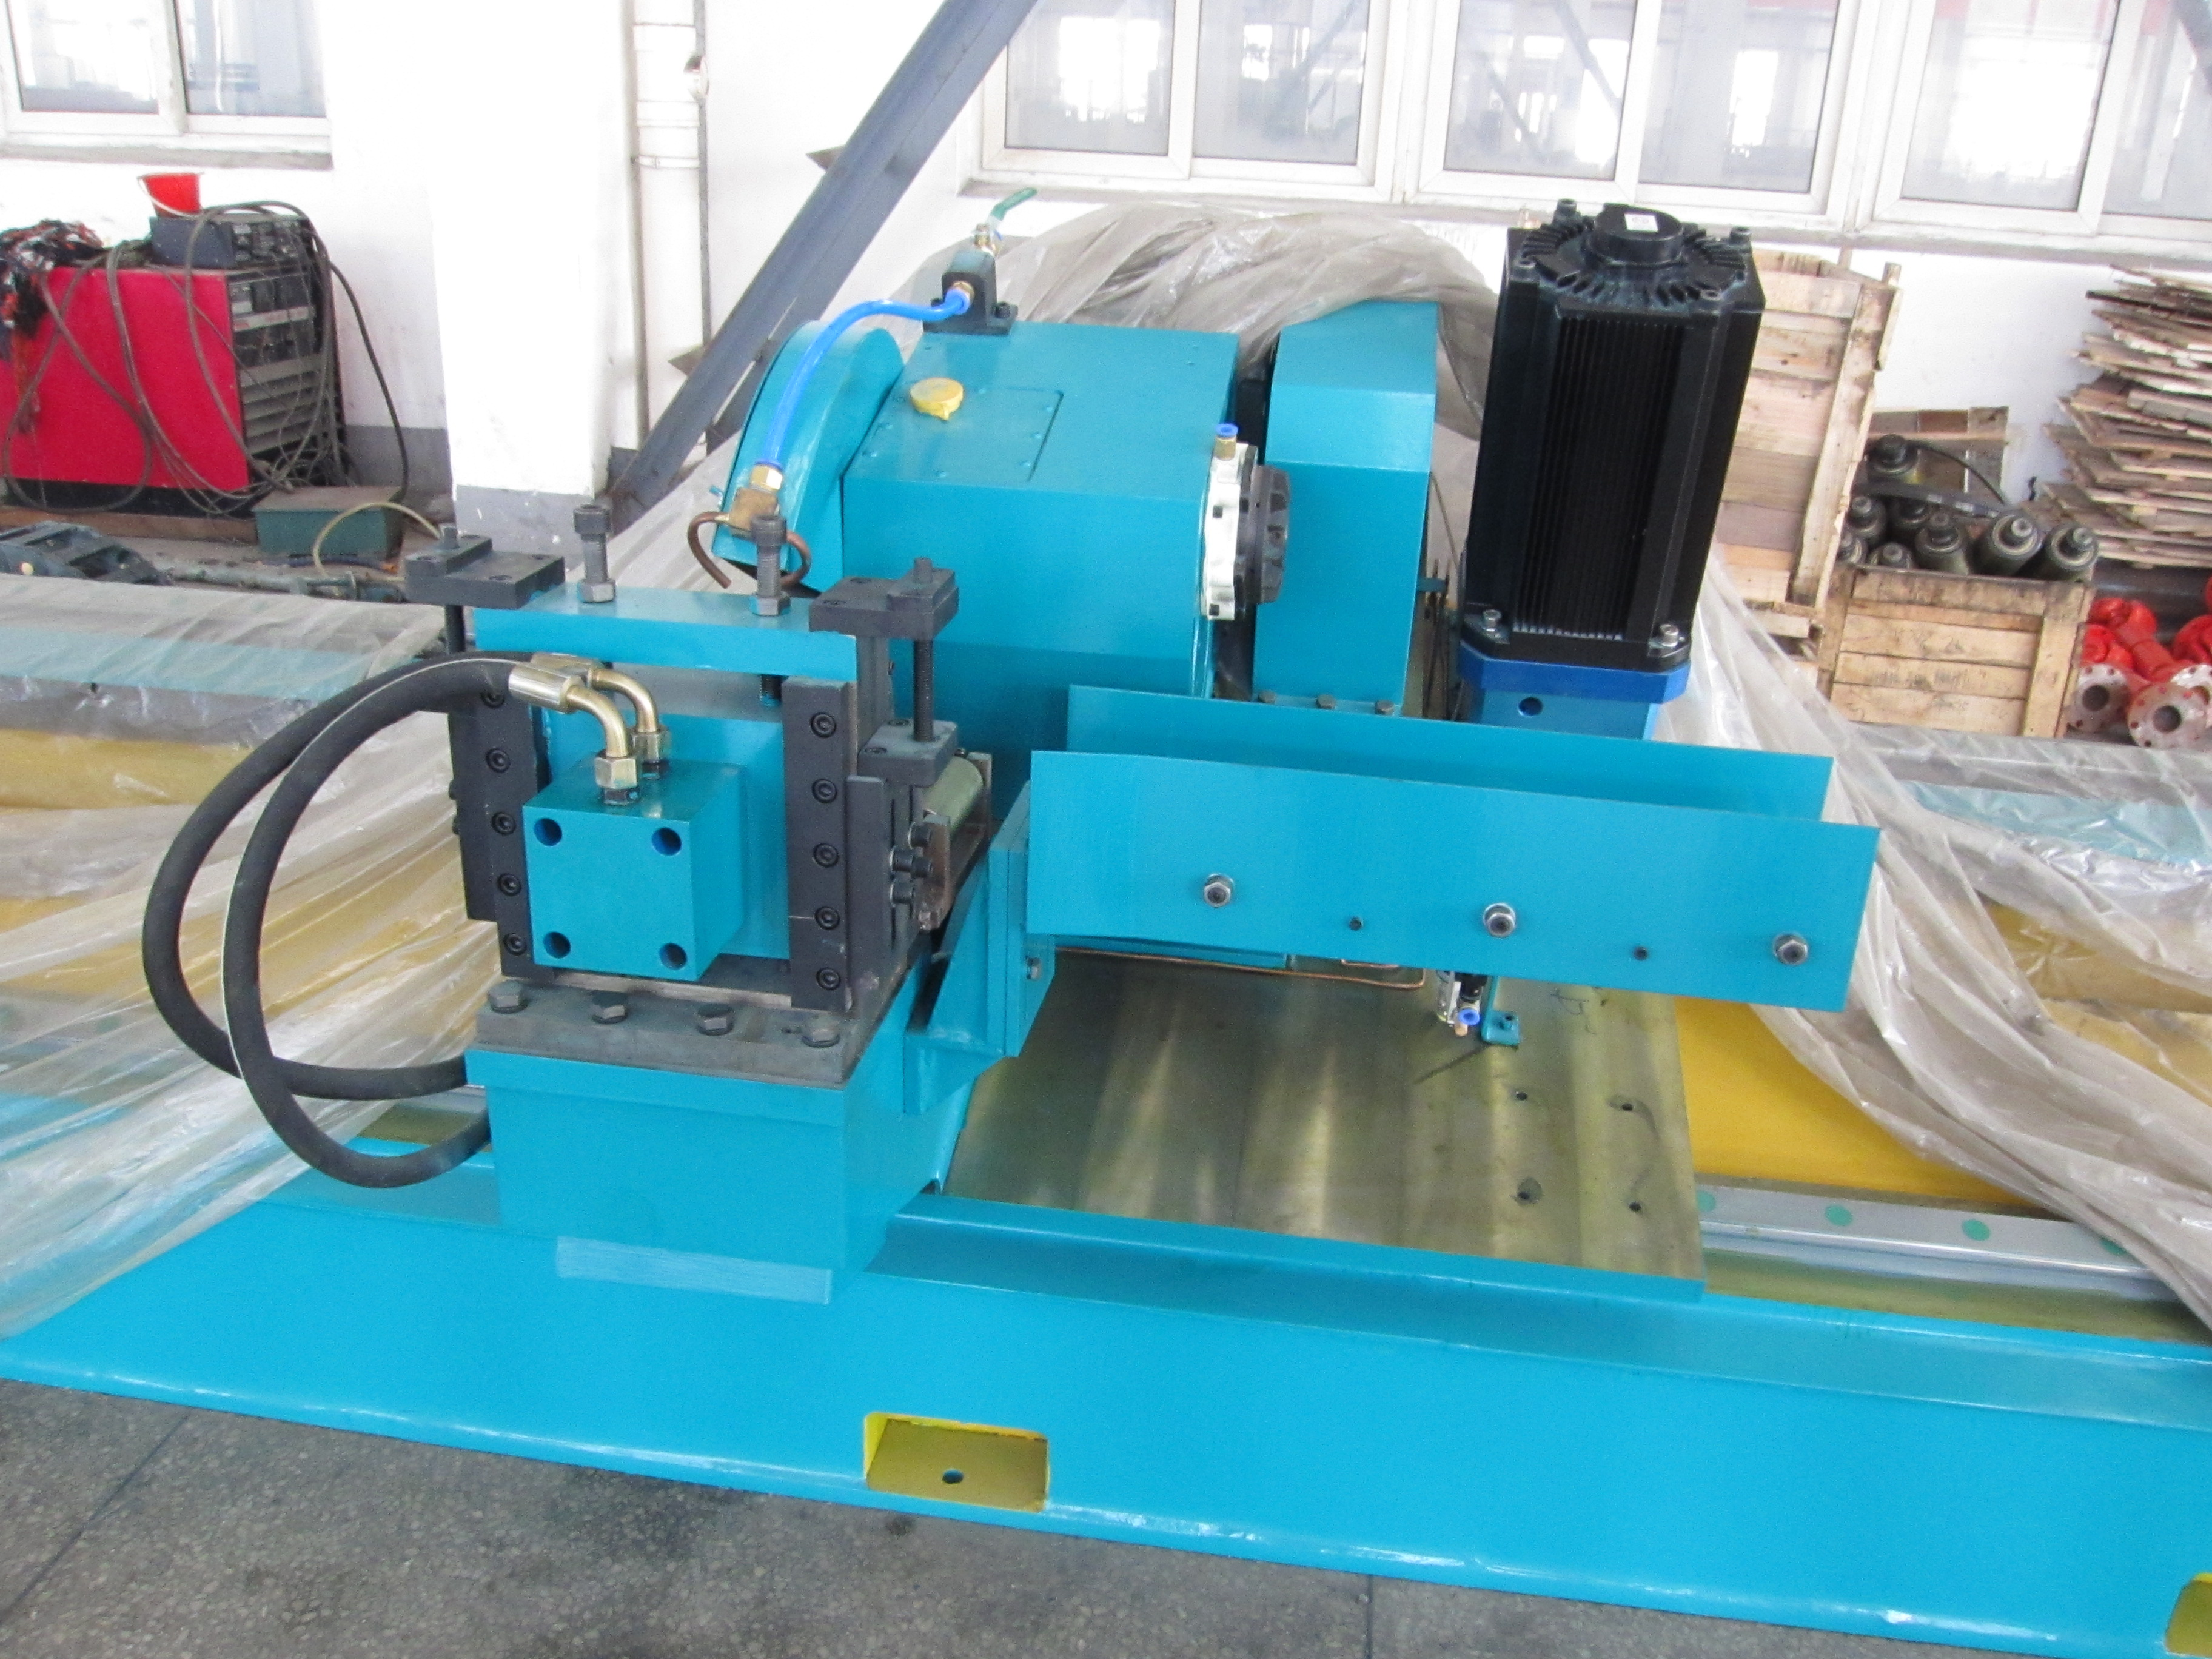 cold saw for the pipe welding machine